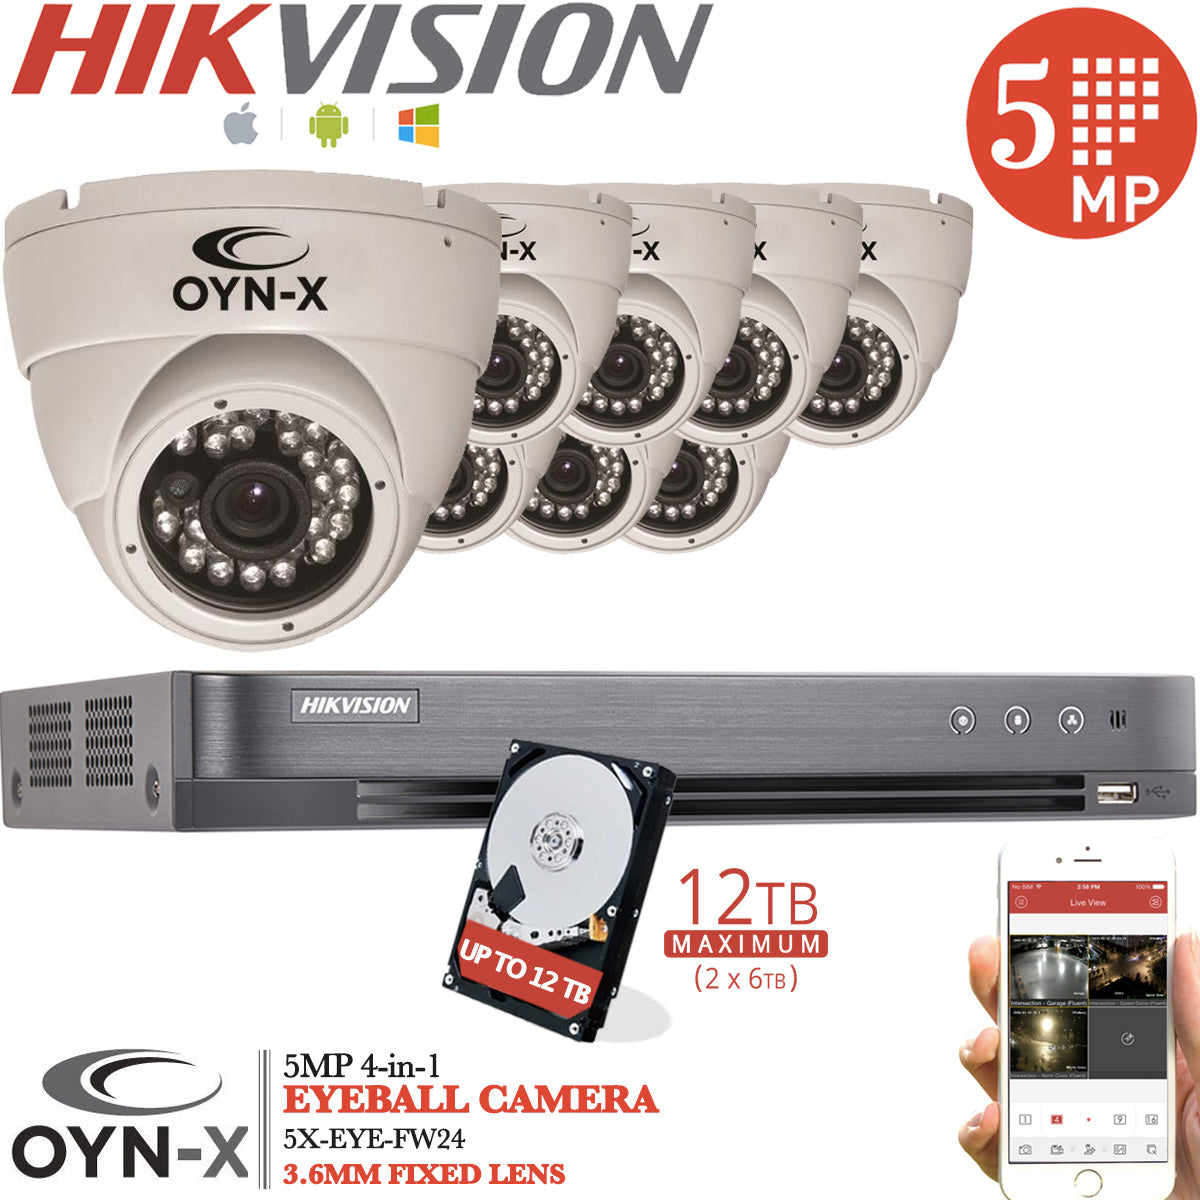 5MP CCTV KIT 8CH Hikvision DVR 8x OYN-X Camera (White)